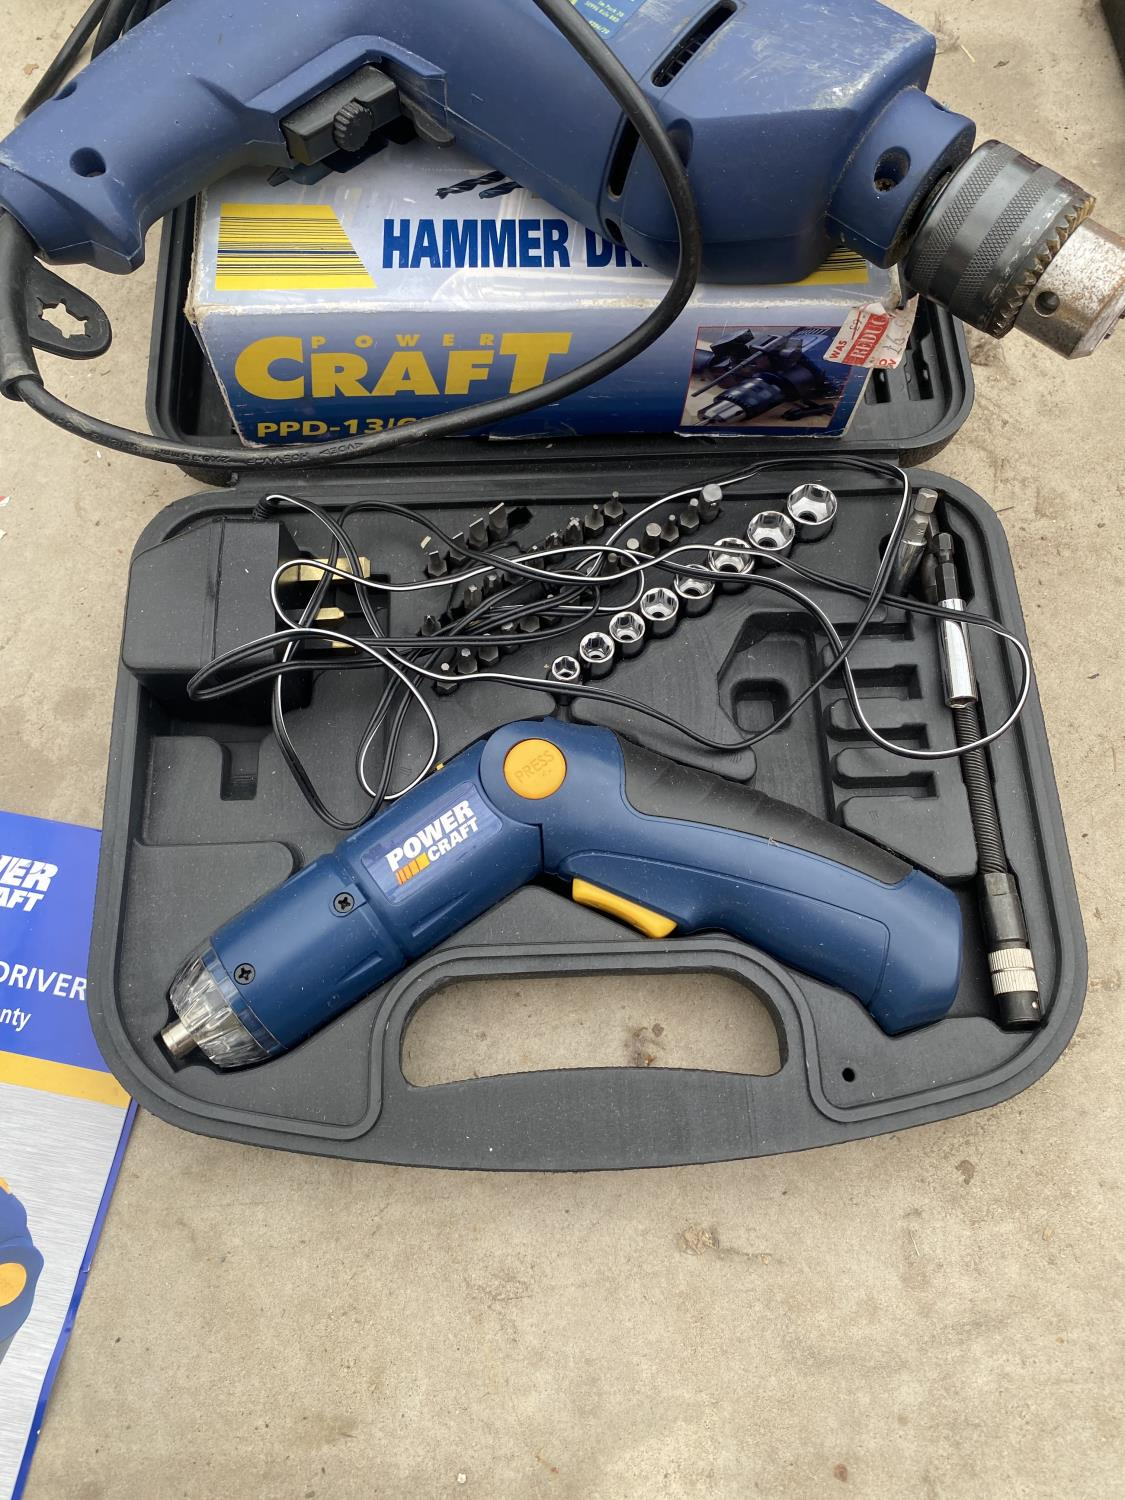 A POWER CRAFT SOCKET SET A POWER CRAFT HAMMER DRILL AND TITAN PRO DRILL BITS AND BLACK AND DECKER - Image 3 of 5